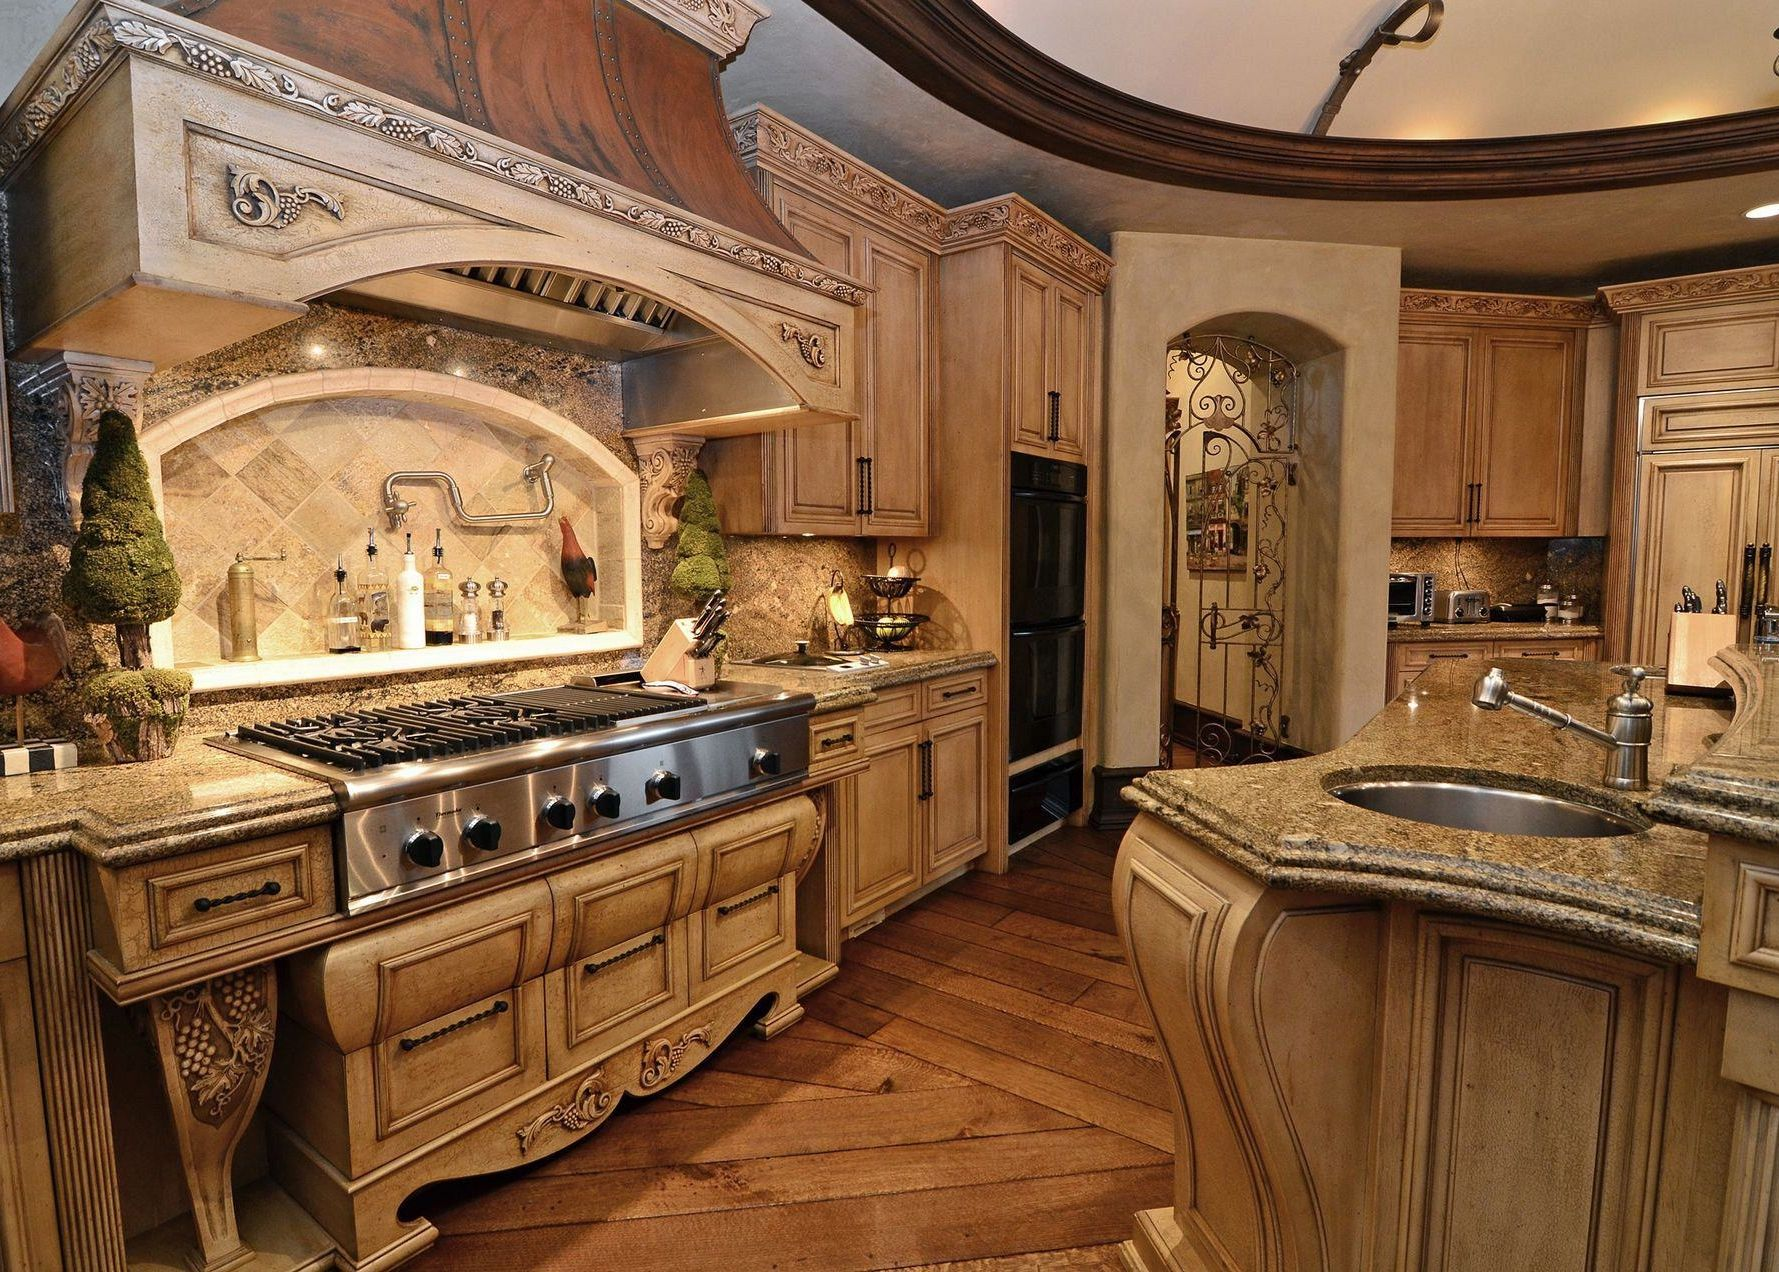 Old world kitchens interior and exterior design ideas for Old world home designs